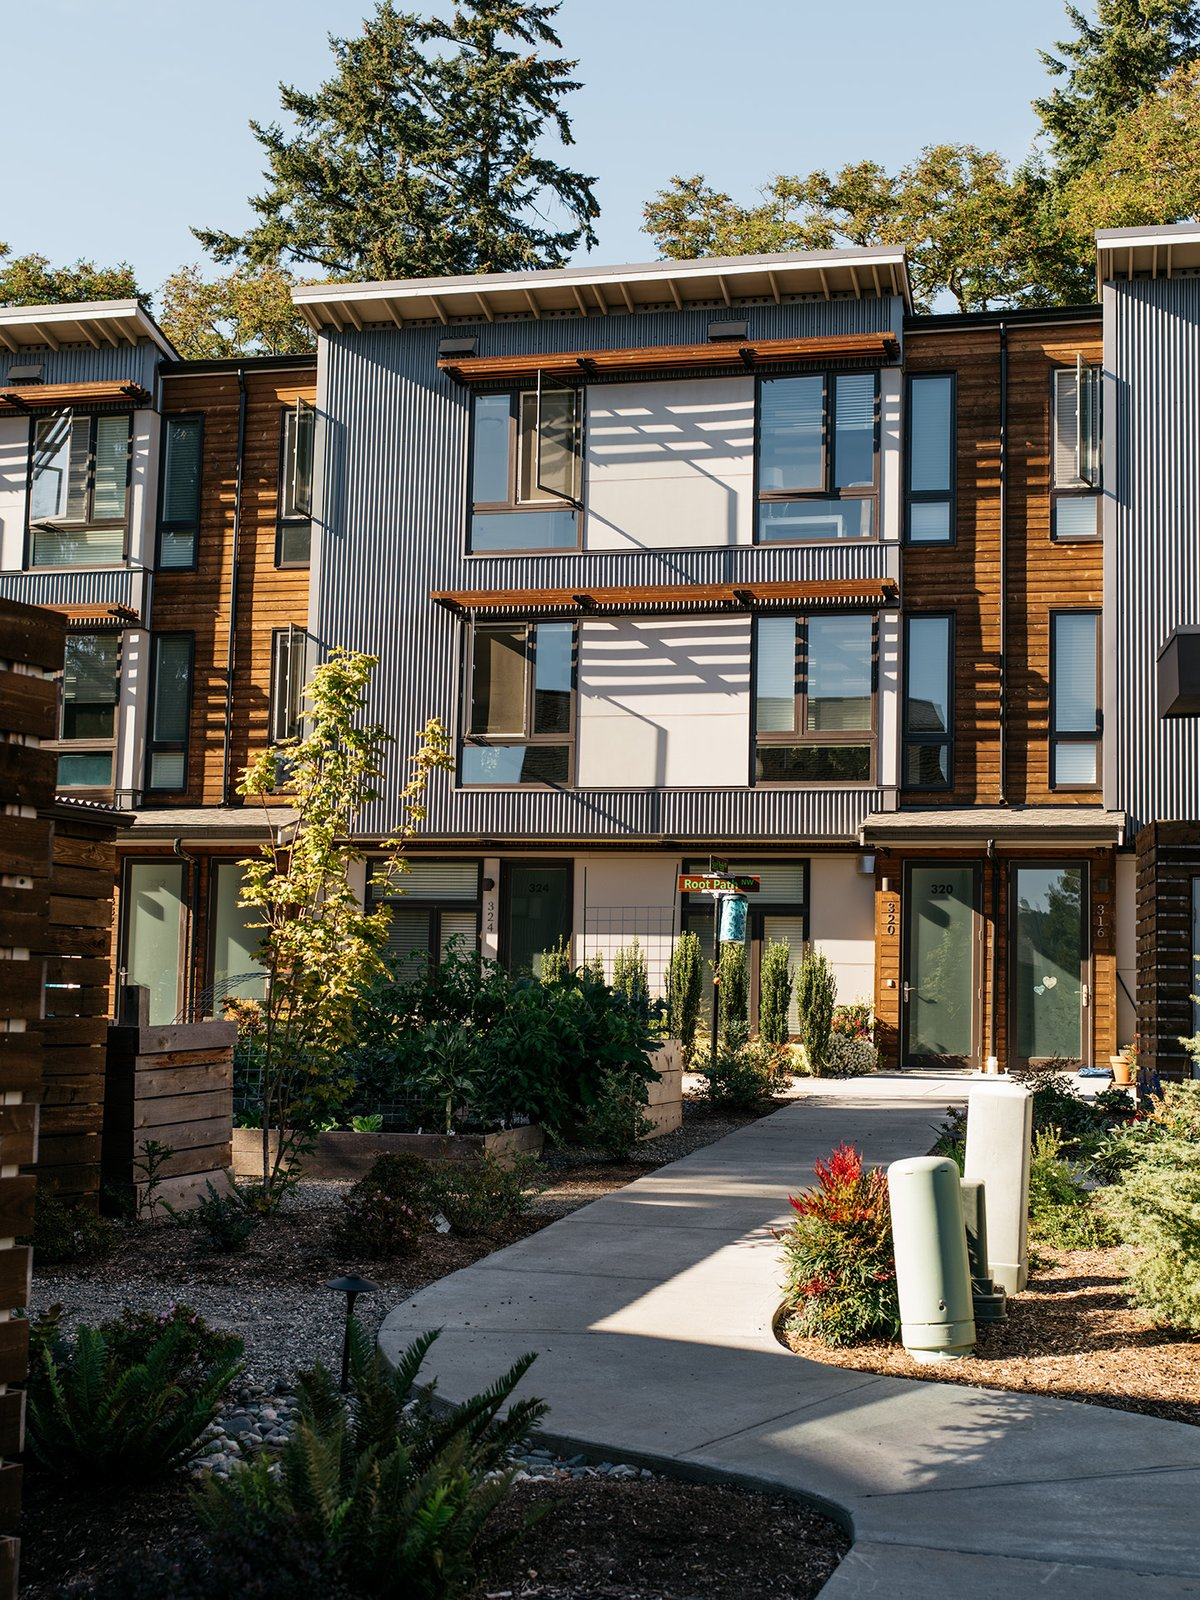 Phase one consists of 23 houses and two apartment buildings with 10 units each. The next two phases, The Grove and The Park, will offer a mix of town houses and condominium apartments. Some critics see these more conventional schemes as diluted versions of the original concept. Tagged: Exterior and House.  Photo 9 of 15 in It Takes a Village